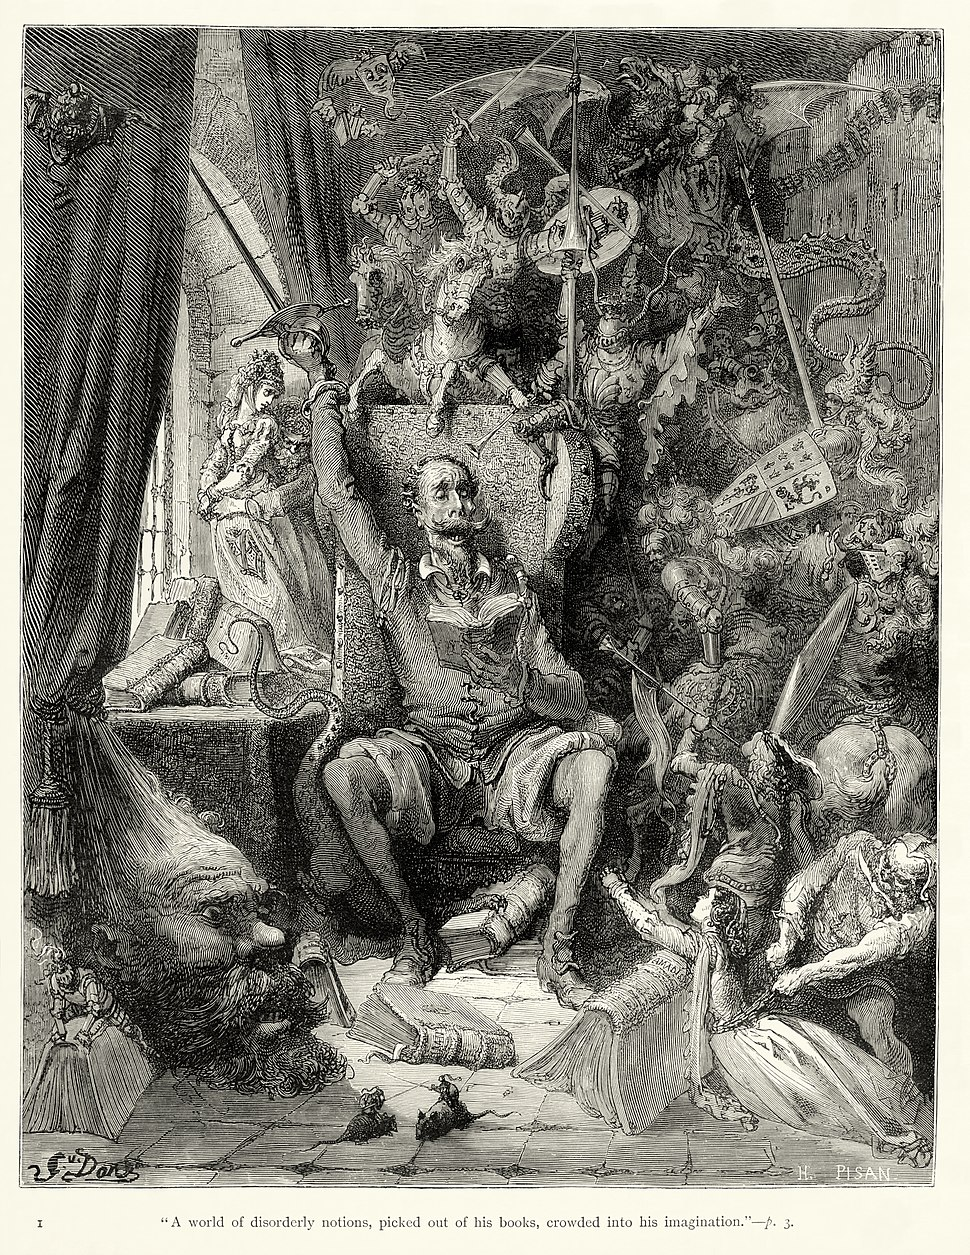 """Gustave Doré - Miguel de Cervantes - Don Quixote - Part 1 - Chapter 1 - Plate 1 """"A world of disorderly notions, picked out of his books, crowded into his imagination"""""""